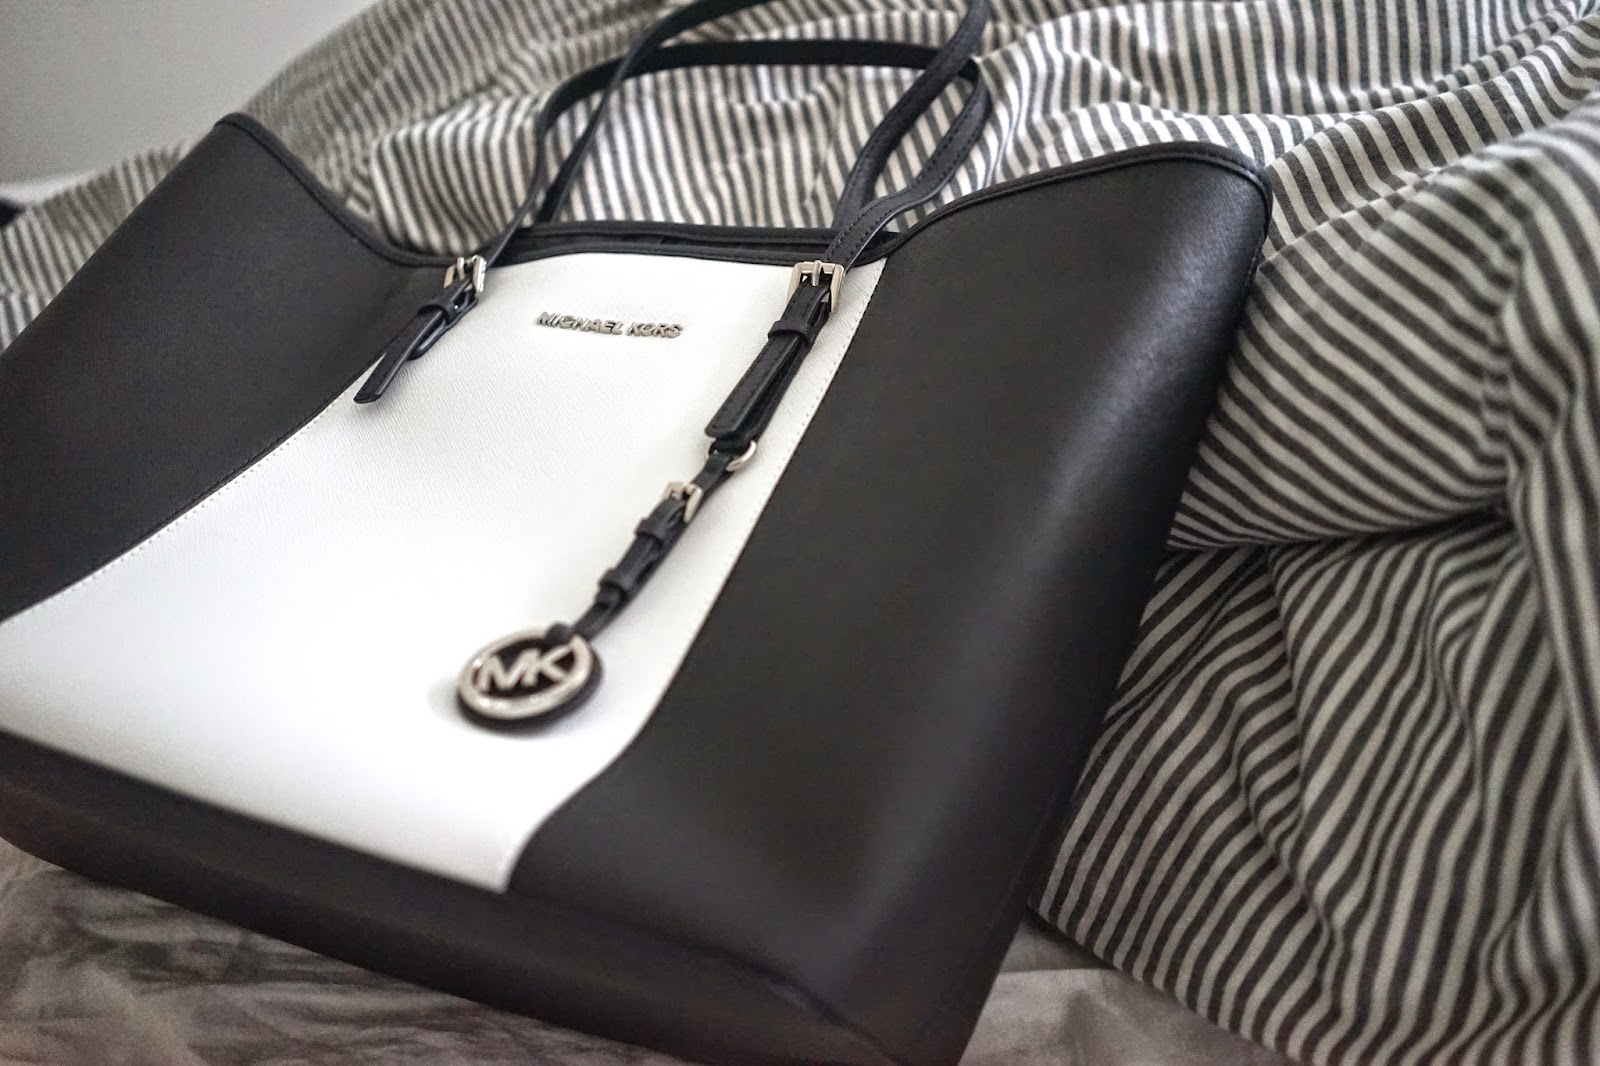 win a michael kors handbag